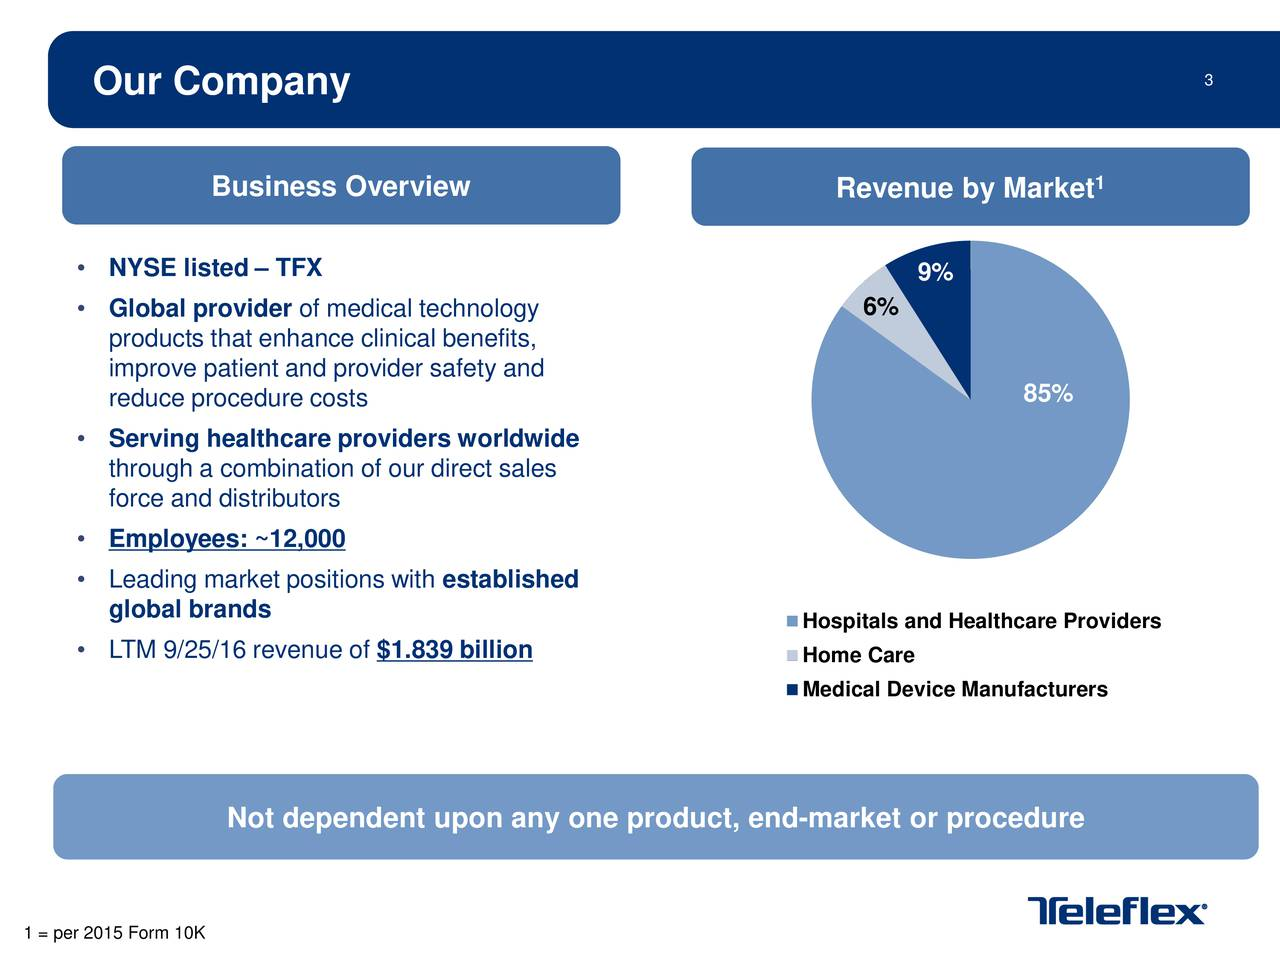 Our Company Business Overview Revenue by Market 1 NYSE listed  TFX 9% Global provider of medical technology 6% products that enhanceclinical benefits, improve patient and provider safety and reduce procedure costs 85% Serving healthcare providers worldwide through a combinationof our direct sales force and distributors Employees: ~12,000 Leading market positions withestablished global brands Hospitals and Healthcare Providers LTM 9/25/16 revenue of$1.839 billion Home Care Medical Device Manufacturers Not dependent upon any one product, end-market or procedure 1 = per 2015 Form 10K